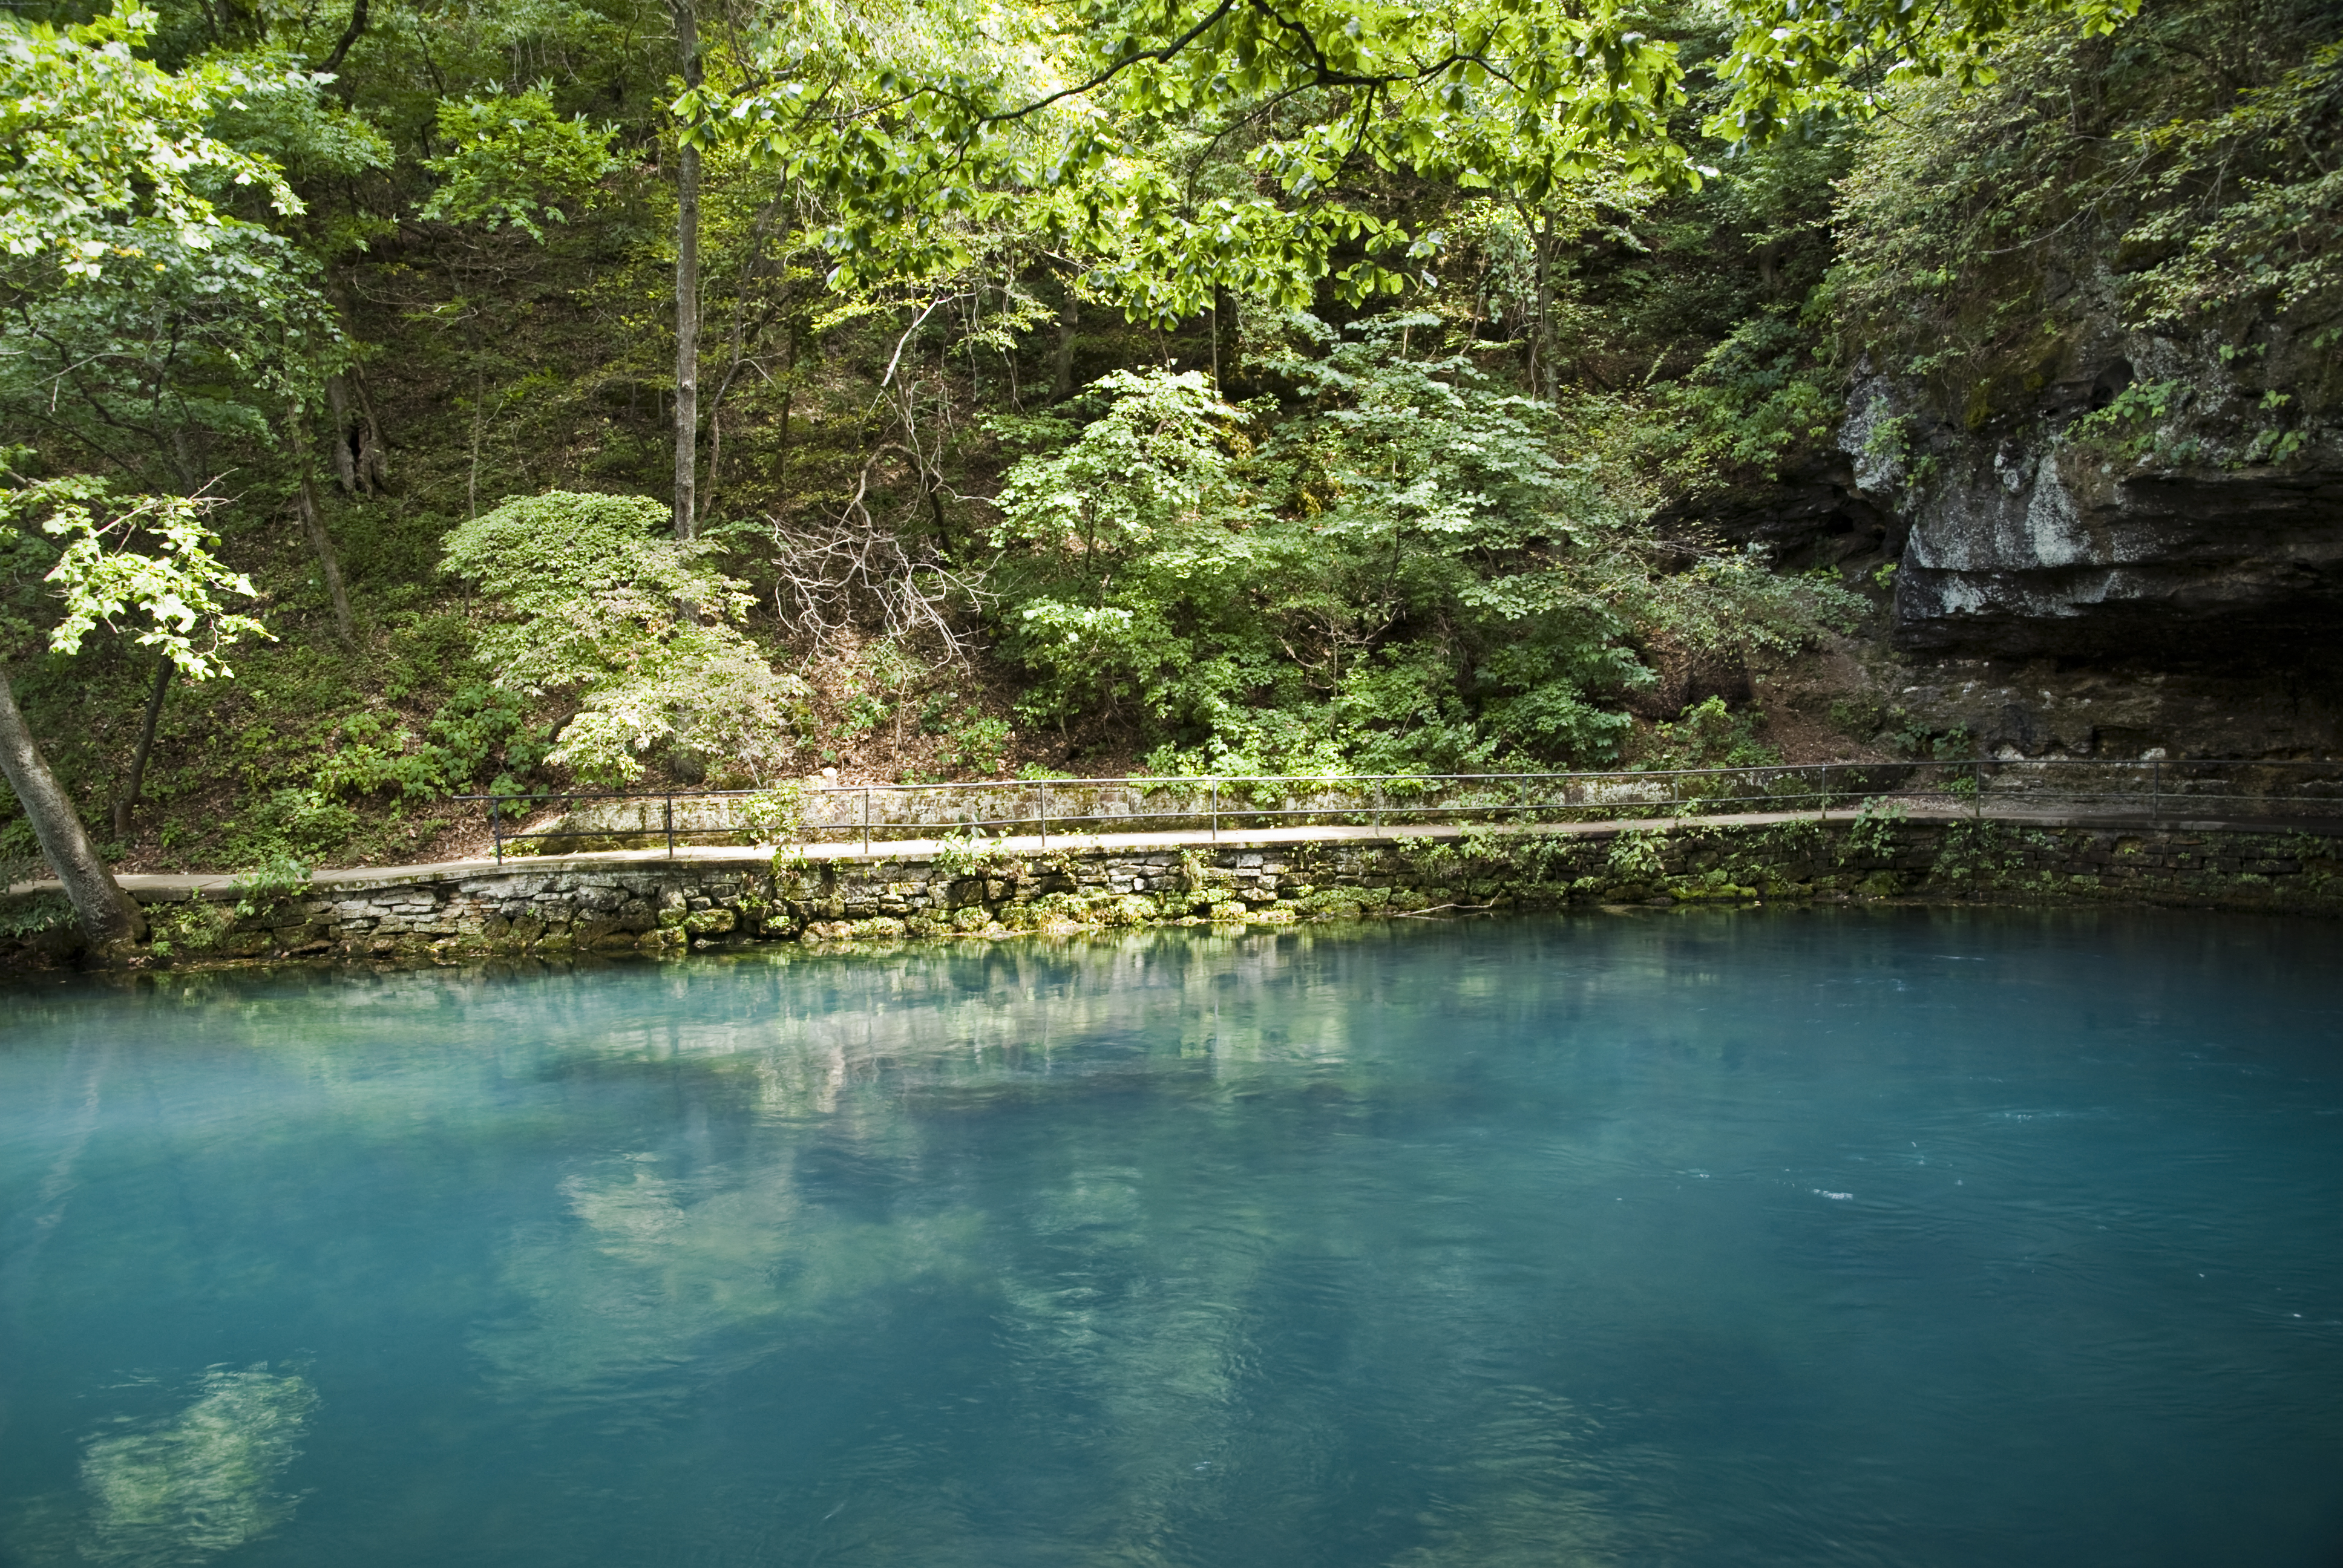 A still pool of turquoise water and overhanging, verdant branches create a placid and inviting riverside scene.